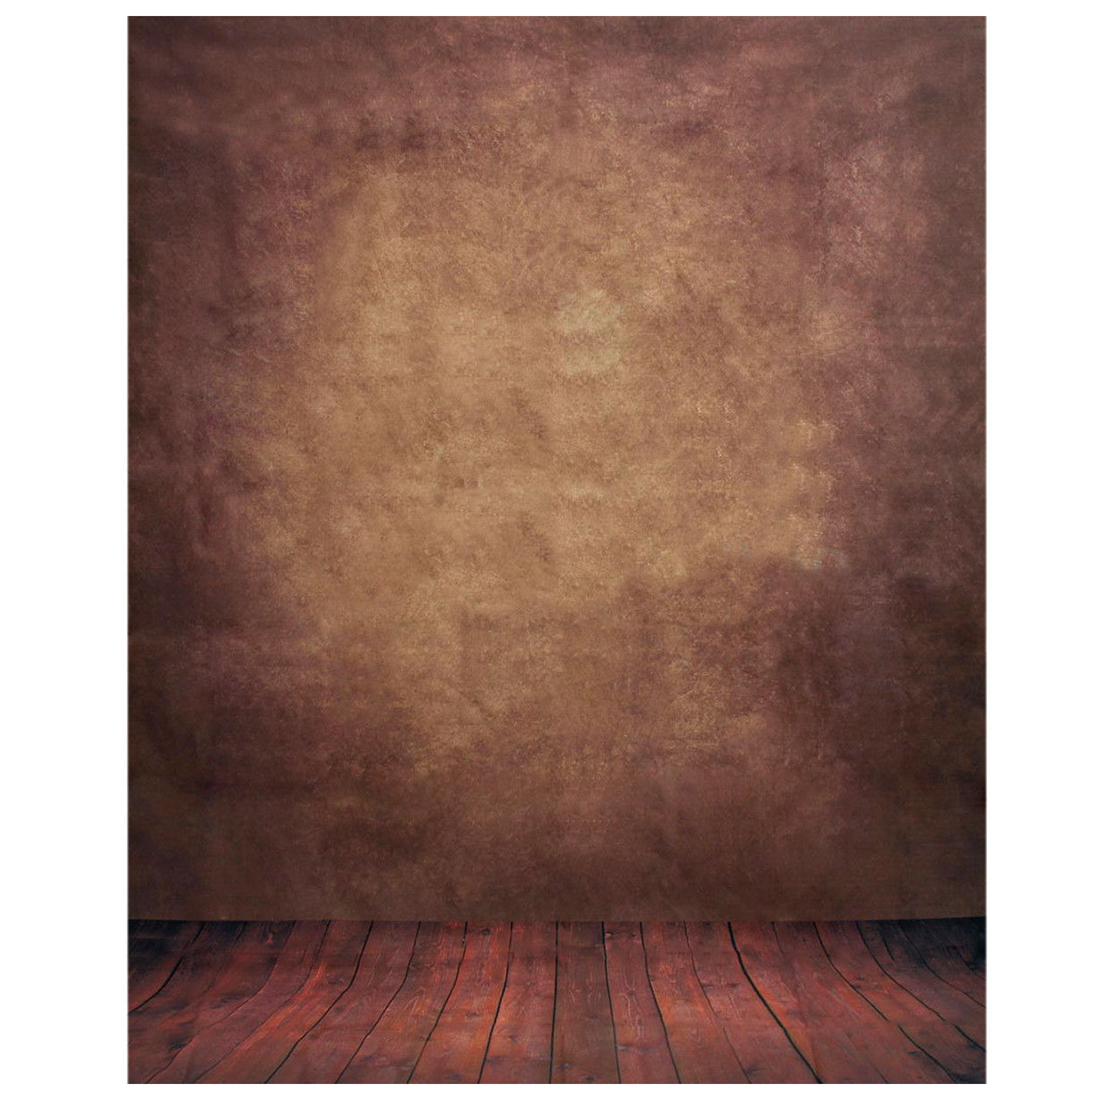 Top deals 0 9m x 1 5m wooden floor photography backdrops dreamlike background for studio props dark brown in background from consumer electronics on